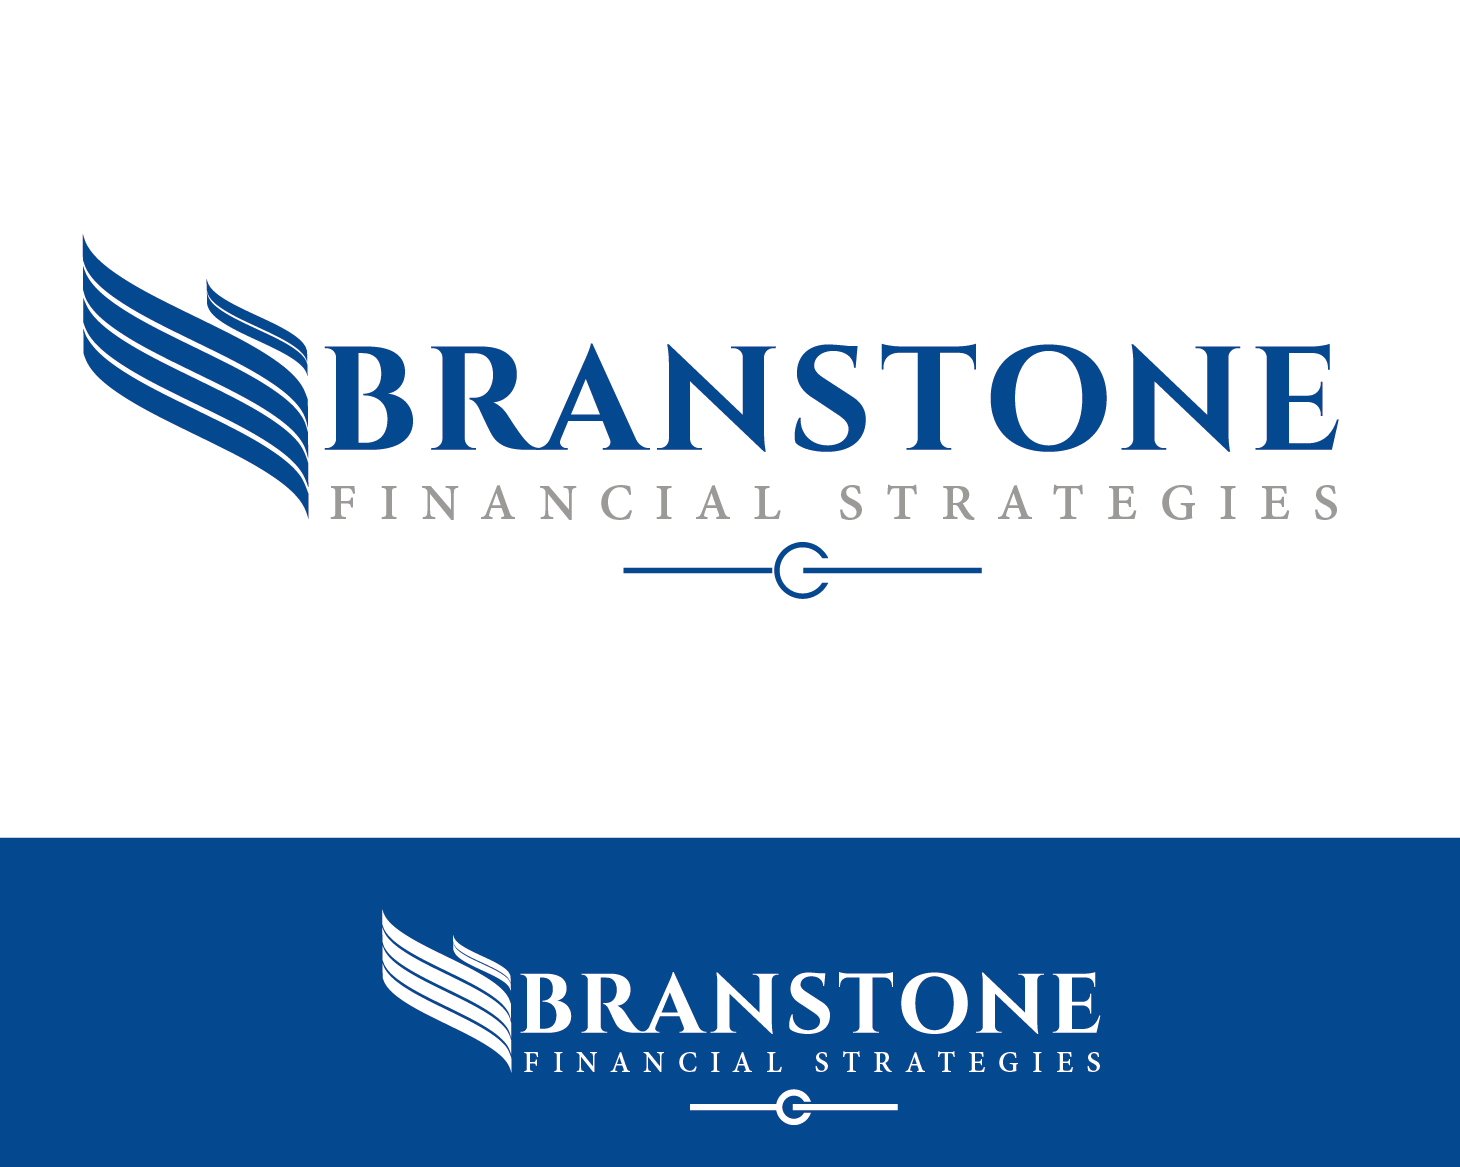 Logo Design by VENTSISLAV KOVACHEV - Entry No. 129 in the Logo Design Contest Inspiring Logo Design for Branstone Financial Strategies.